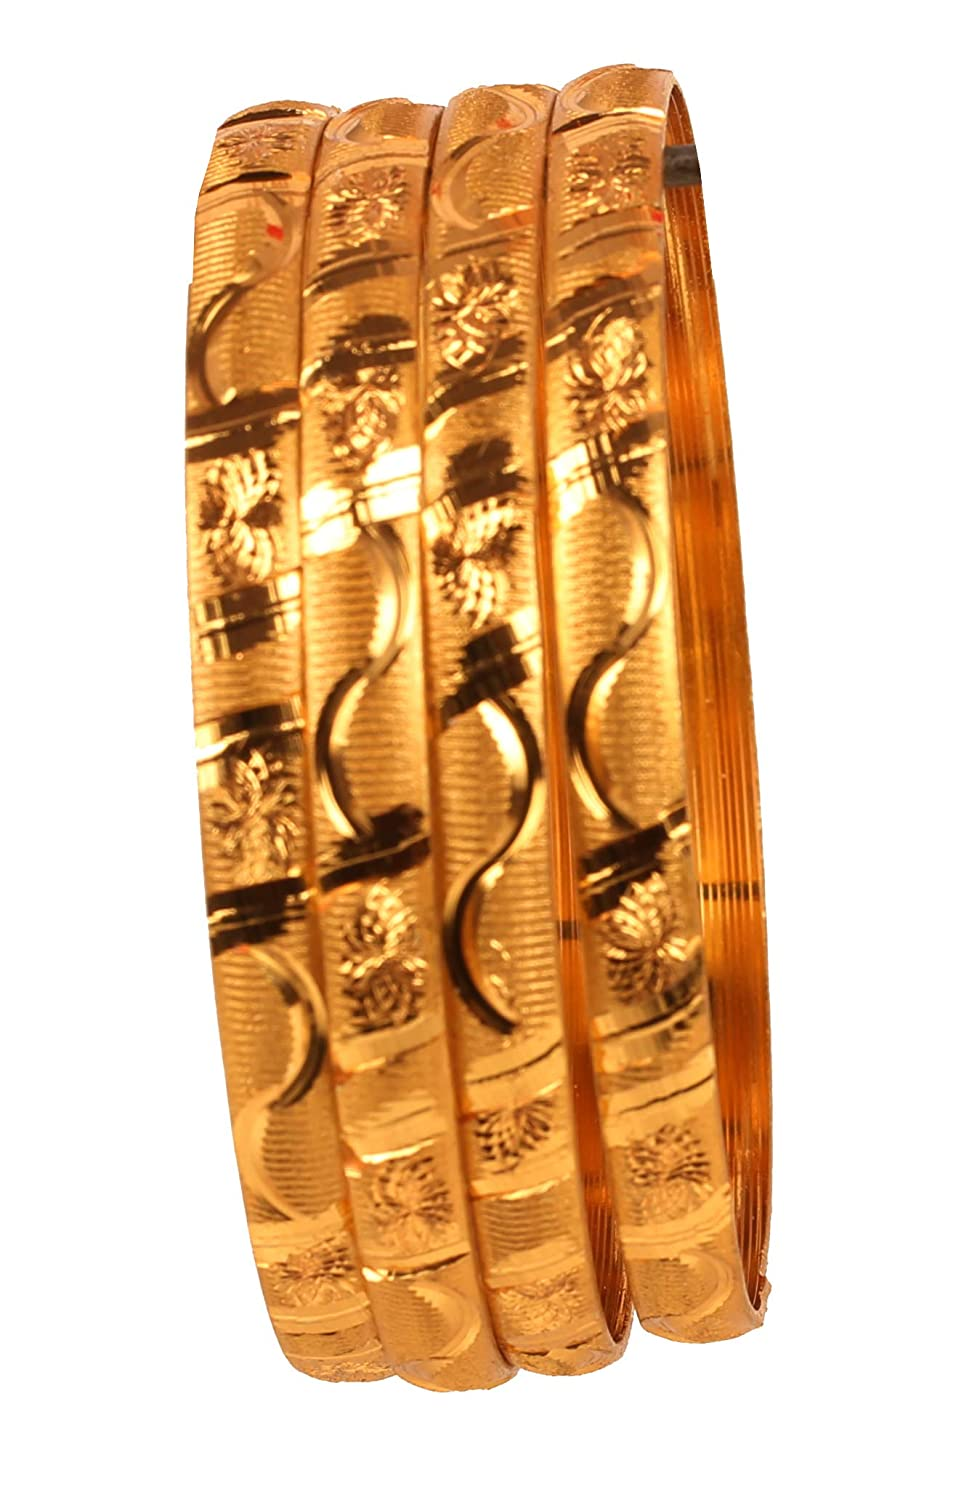 Touchstone New Golden Bangle Collection Indian Bollywood Desire Brass Base Artistic Indian Knitted Mat Work Designer Jewelry Bangle Bracelets Set of 4 in Gold Tone for Women